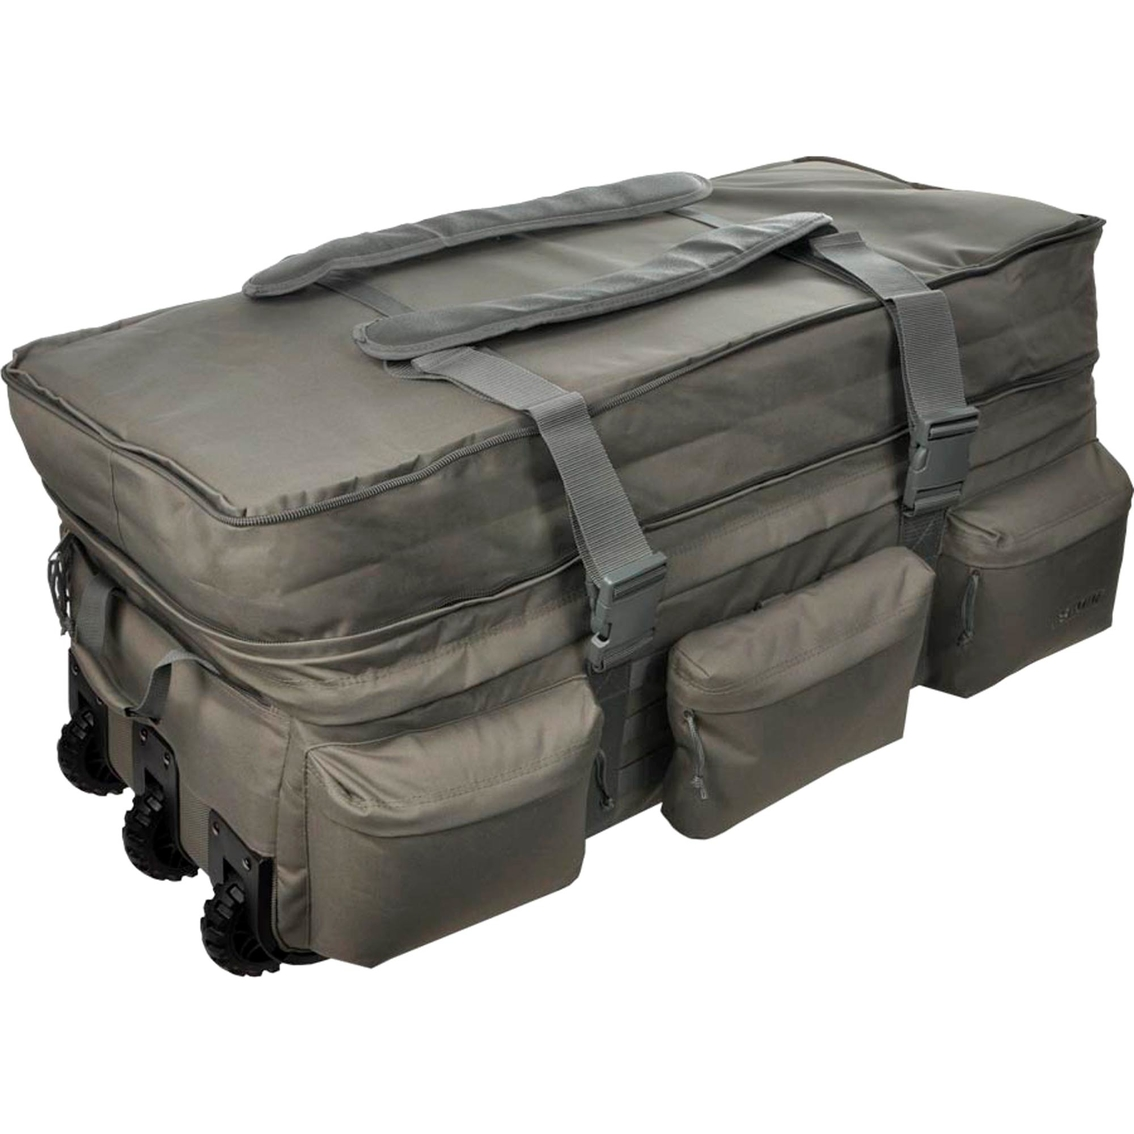 Sandpiper of California Rolling Loadout Luggage X-Large Bag